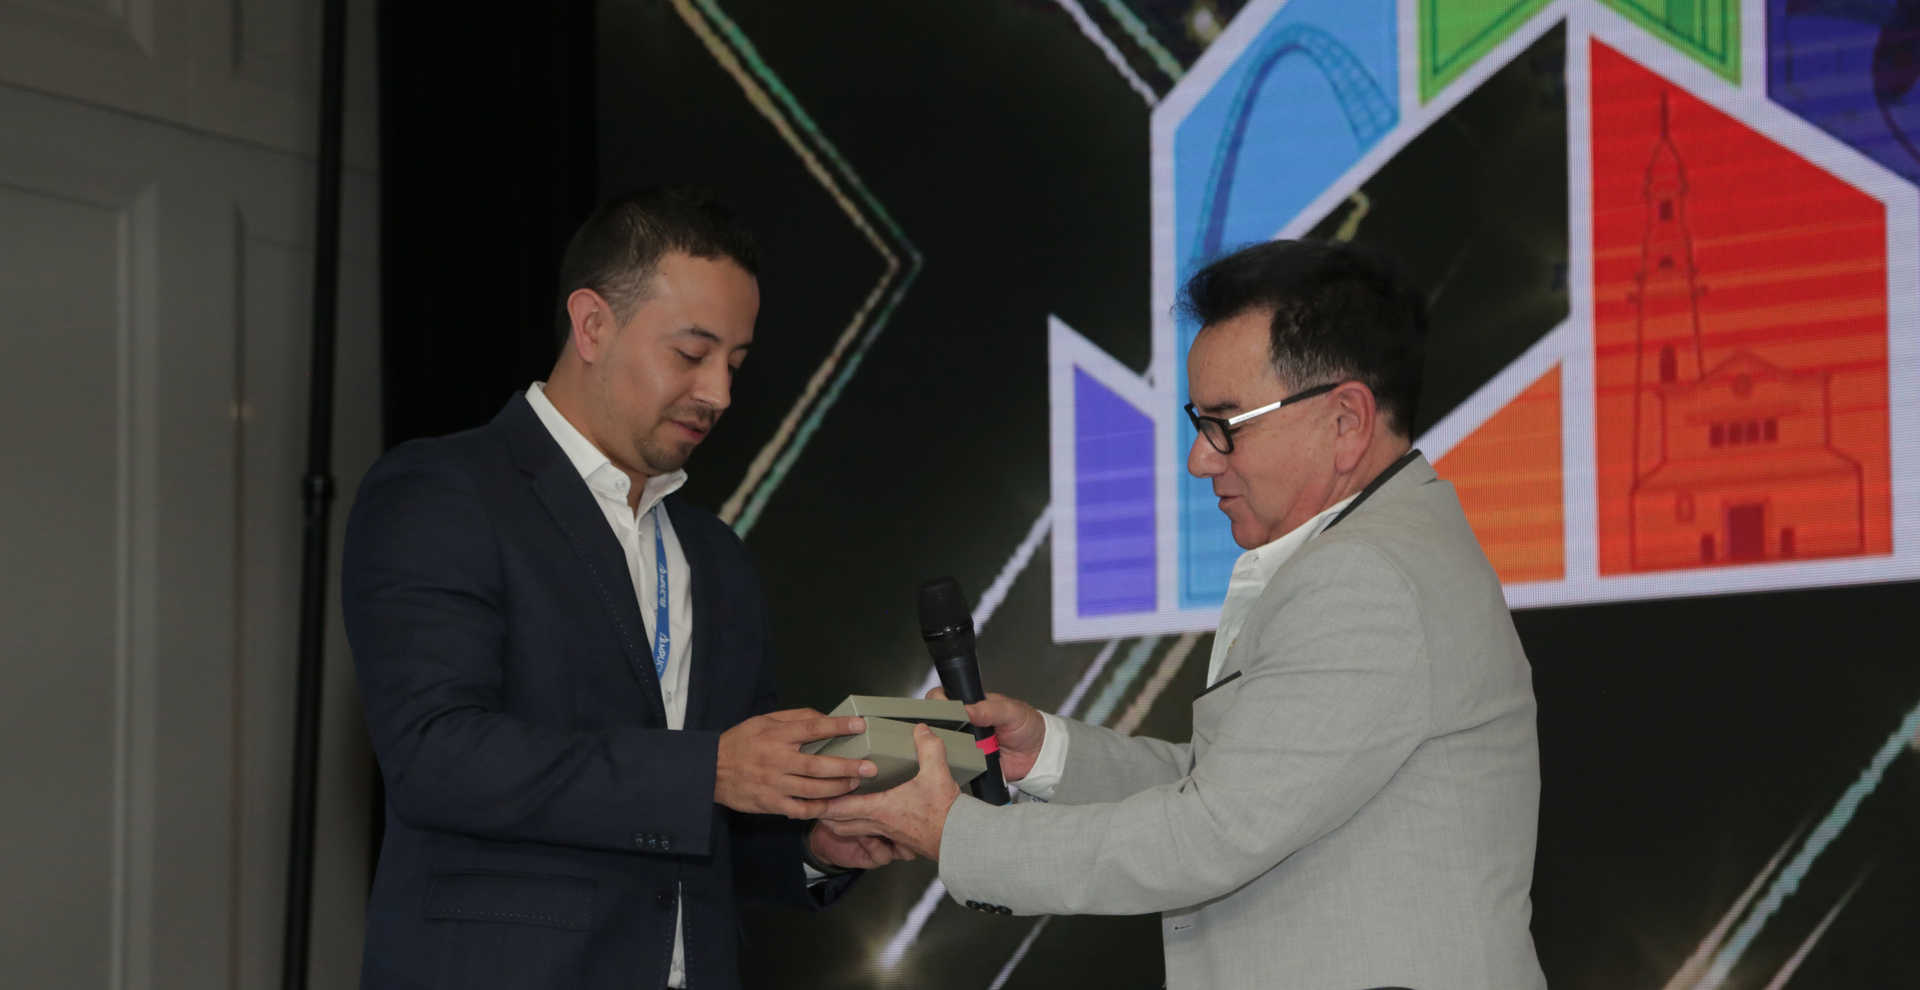 Oscar Cabrera recibe premio de Luis Lepage - Monitor Plus User Conference 2019